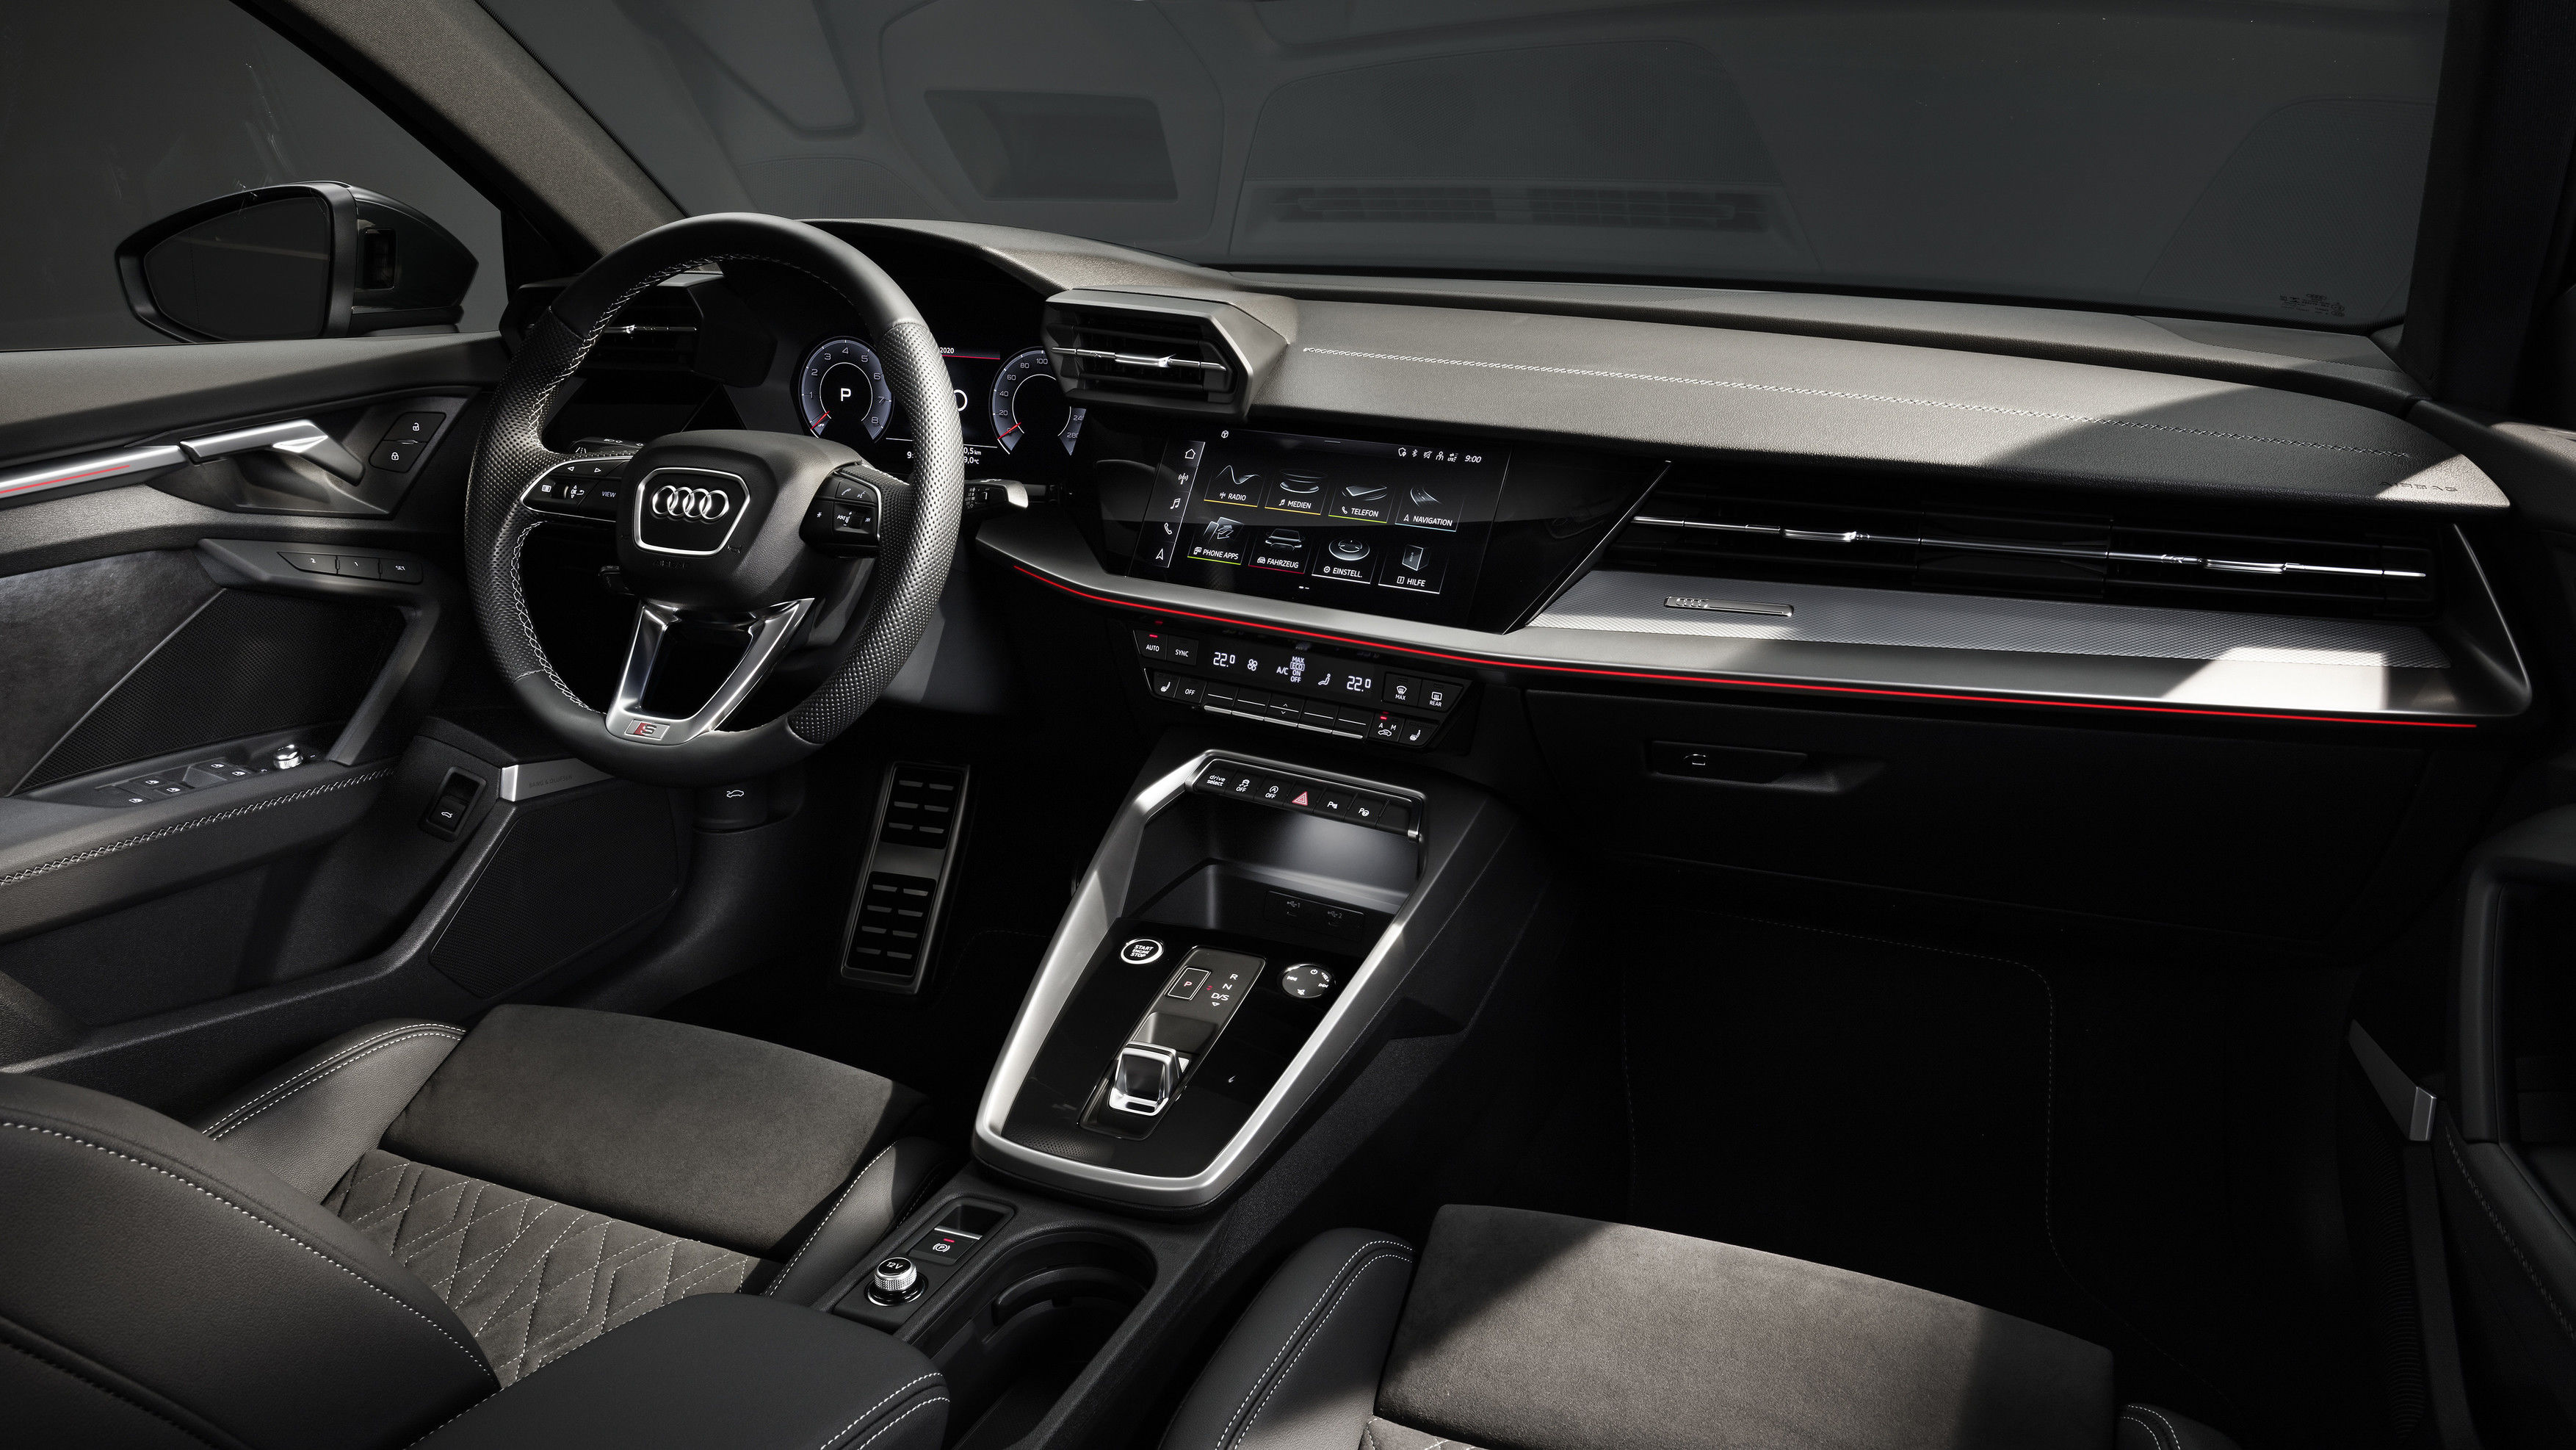 The cockpit of the new A3 Sedan is entirely focused on the driver. The instrument panel with the central MMI touch display also includes handwriting detection as well as natural language control that can optionally draw on the capabilities of the cloud.